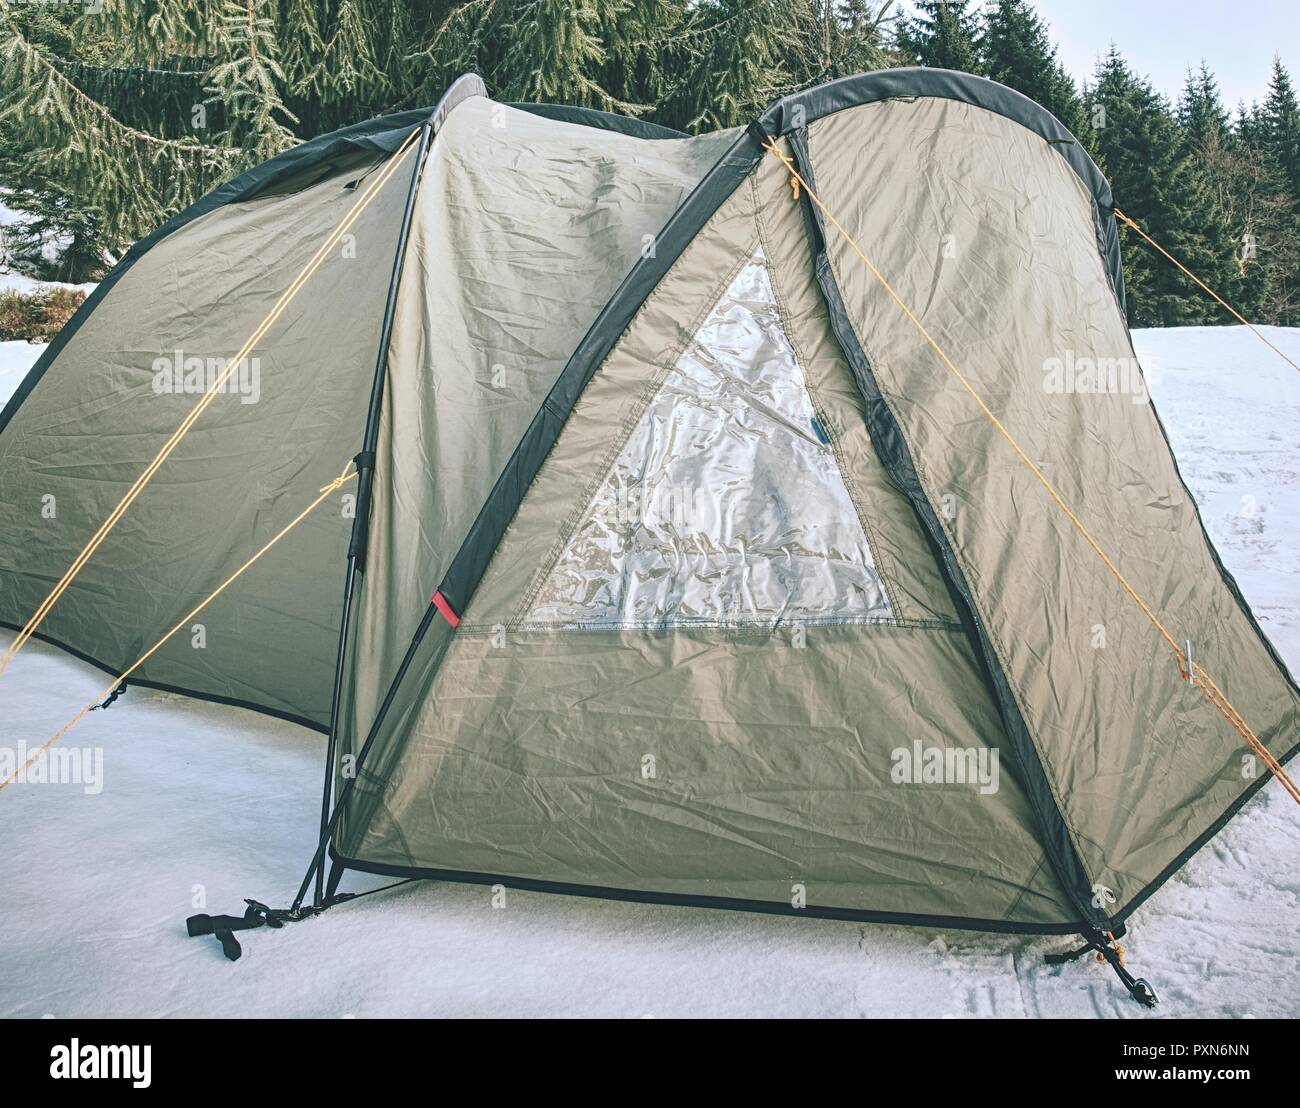 On Vacation For Few Days >> Camping On Snow Tent Built In The Fresh Snow Spent Few Days On